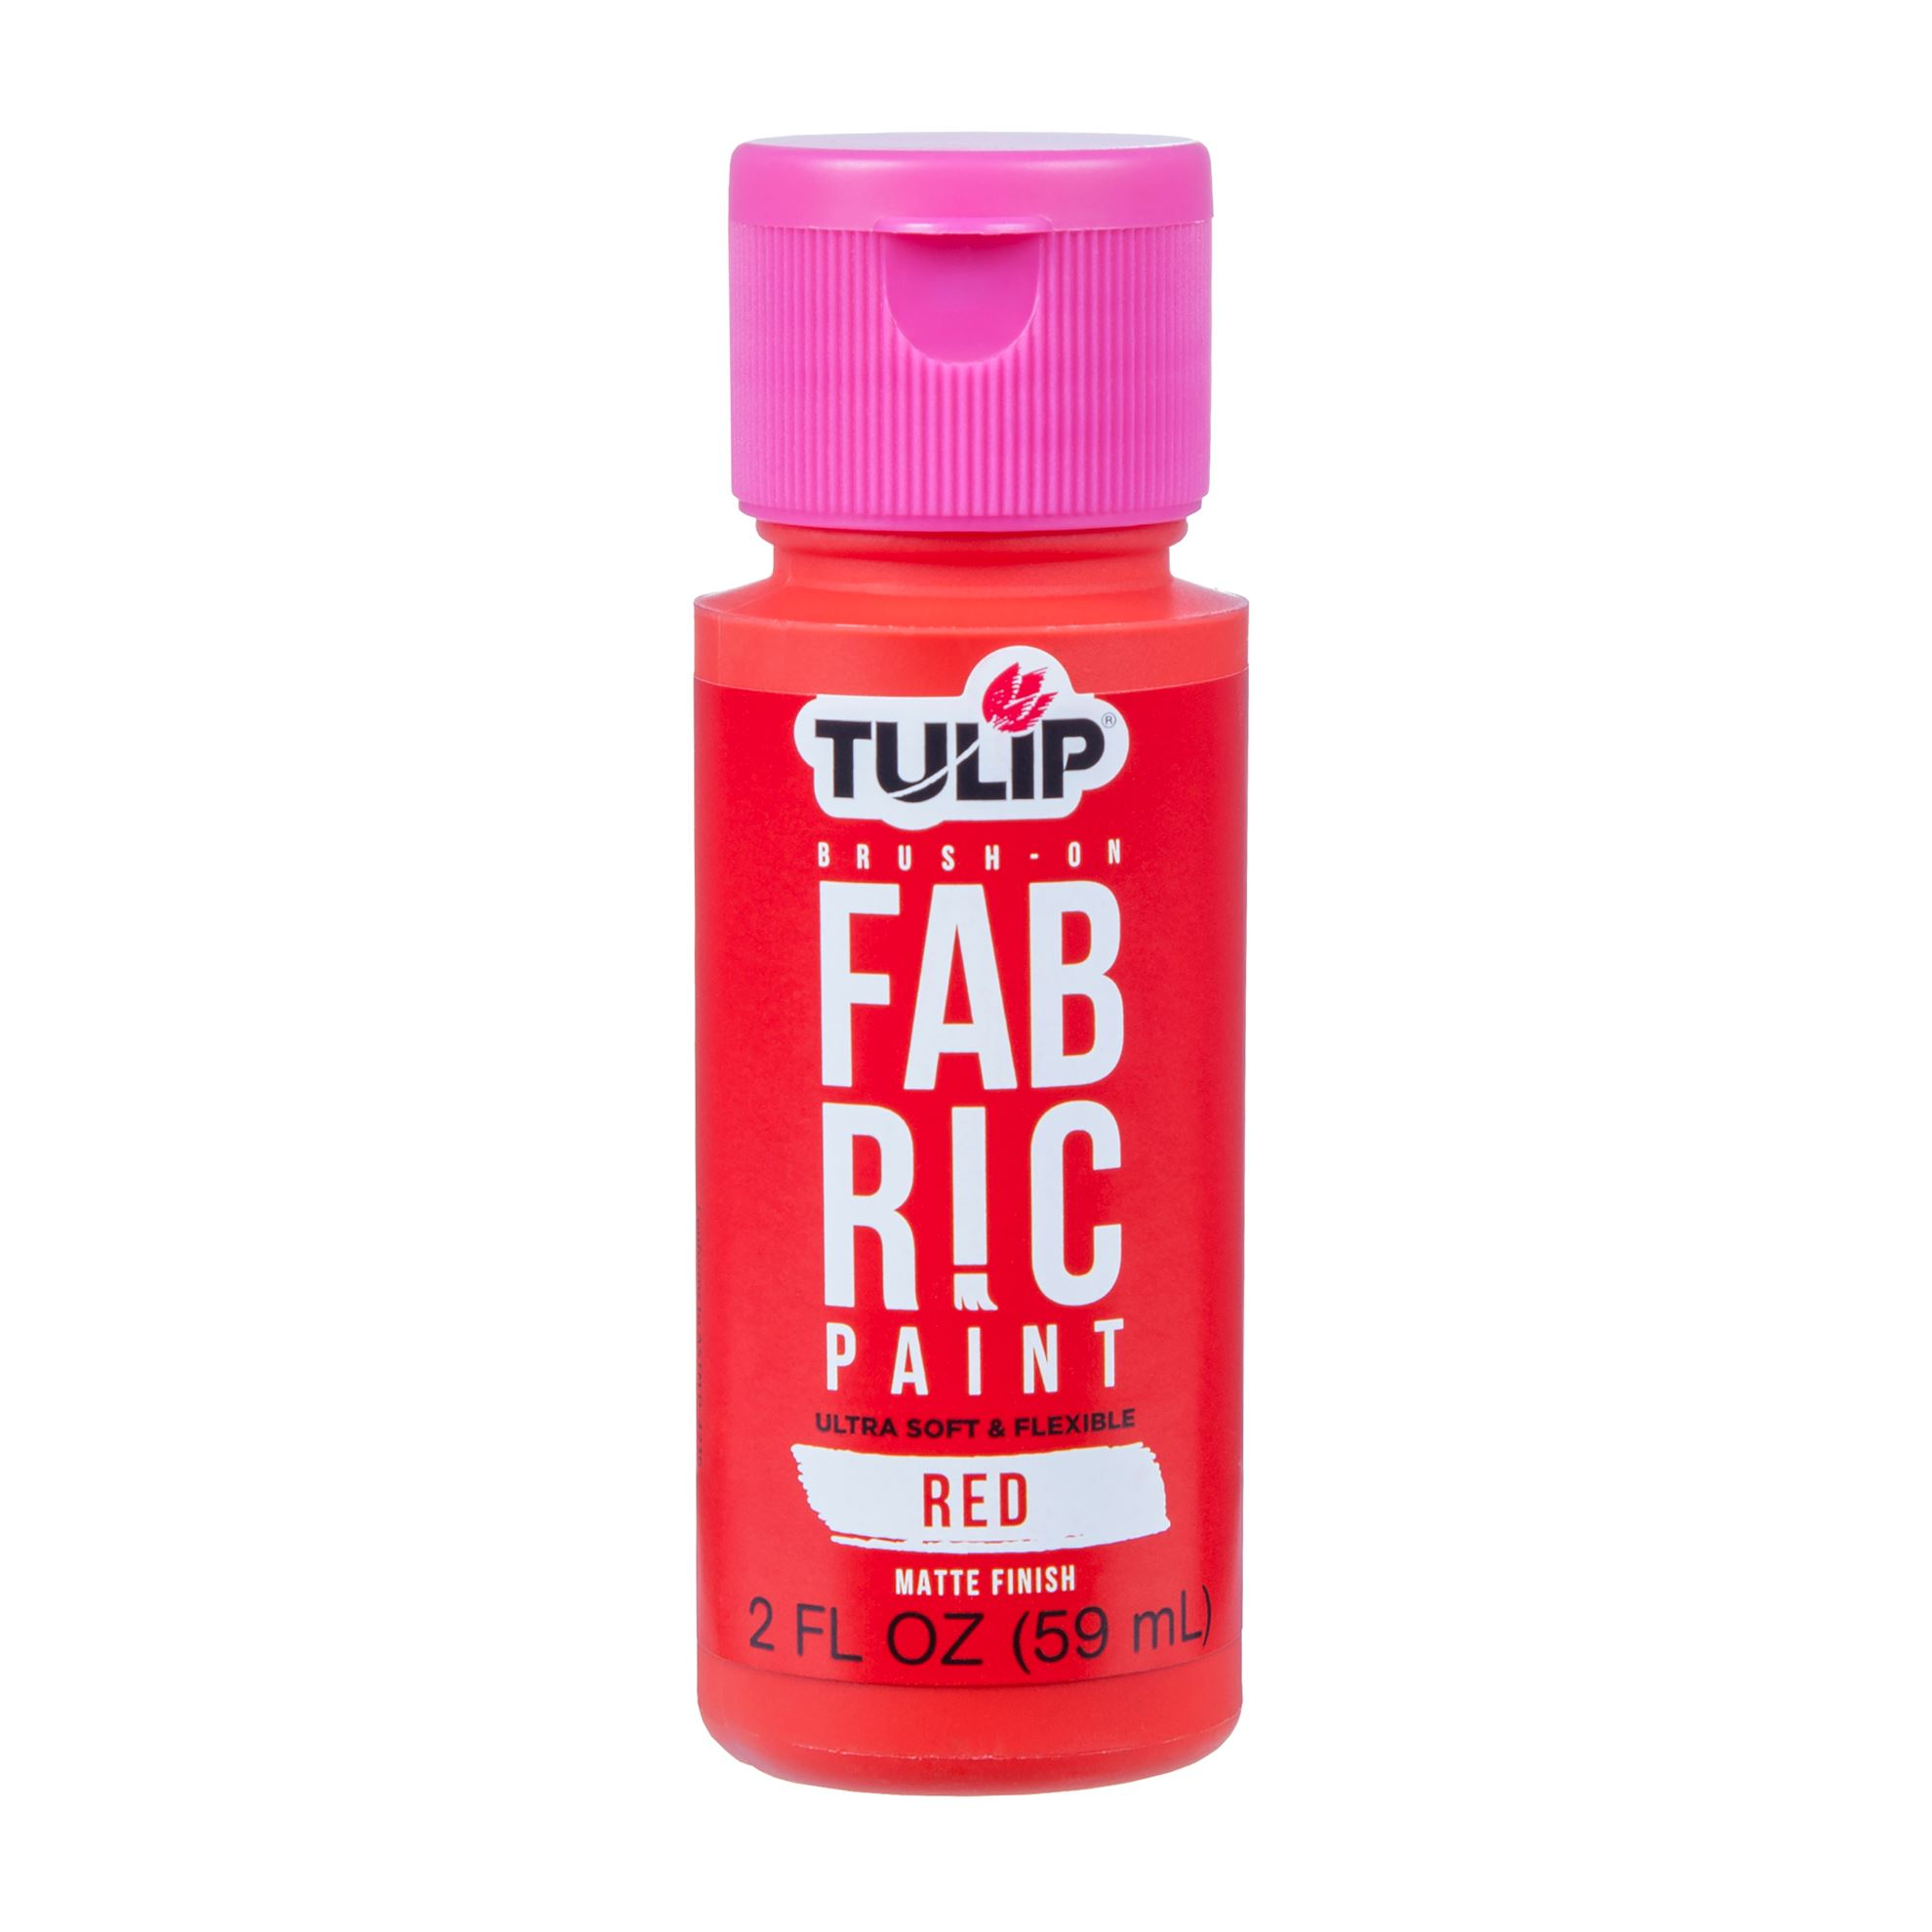 Picture of Brush-On Fabric Paint Red Matte